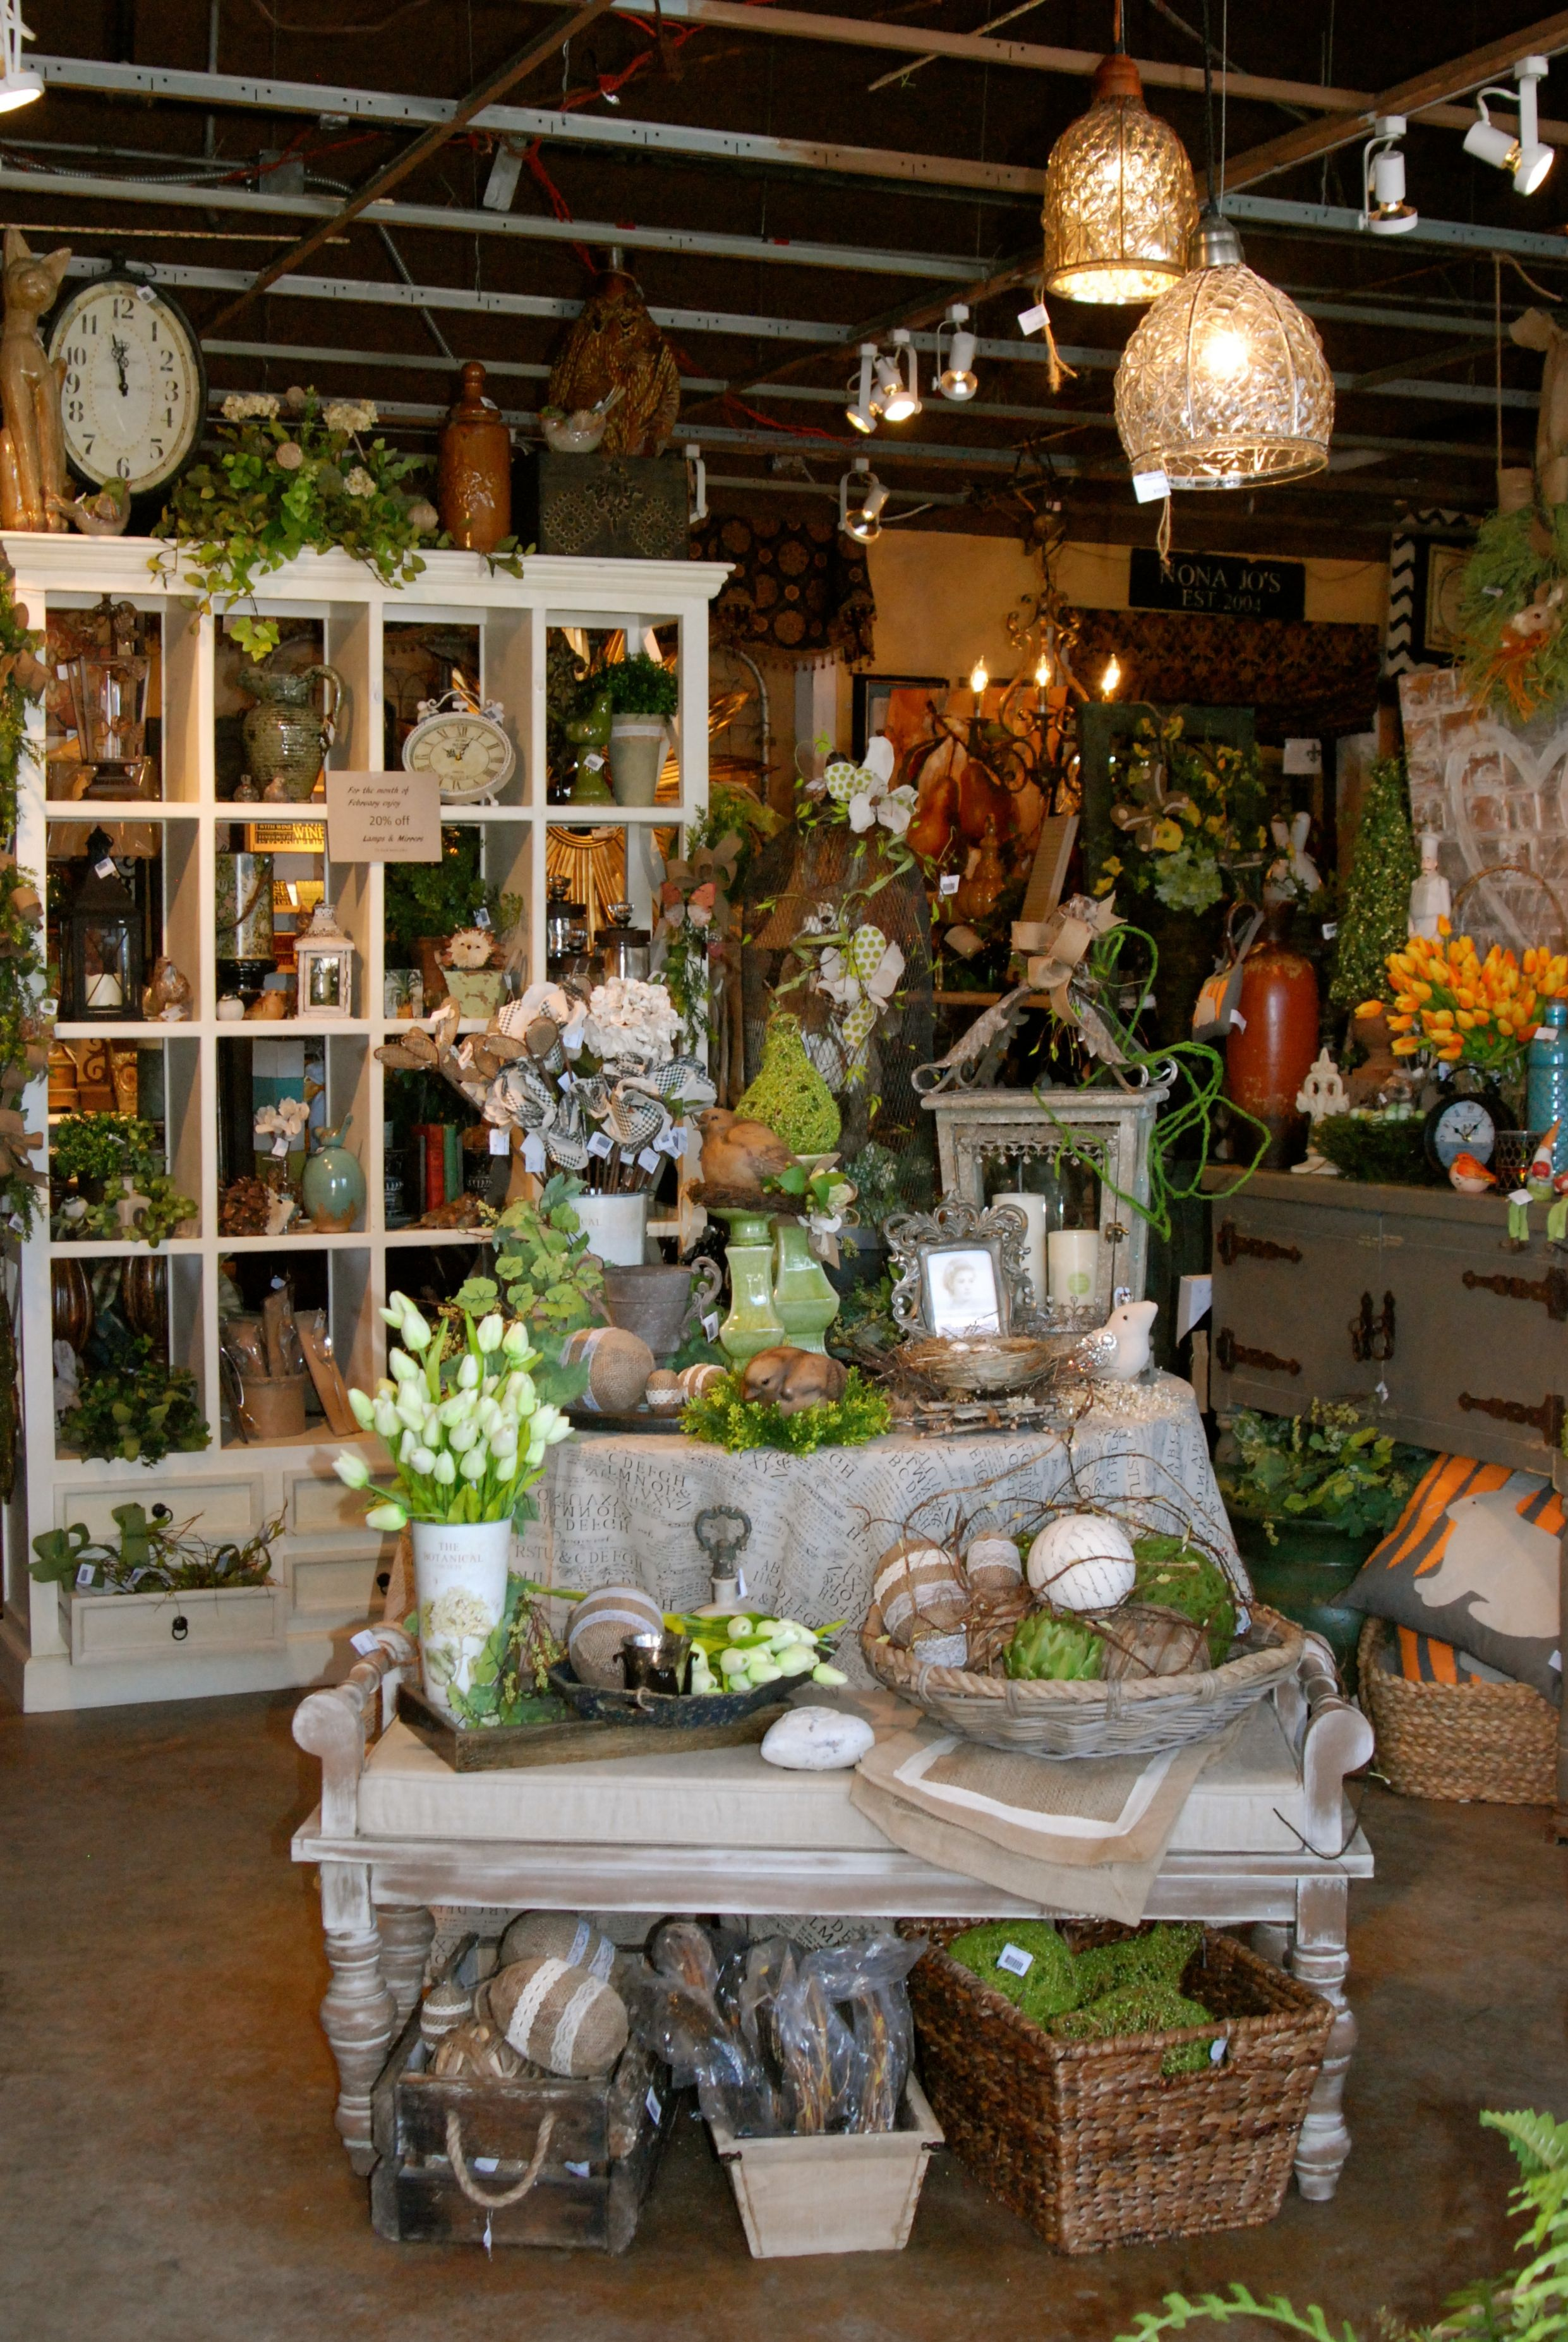 Pin By Tricia Farley On Garden Vignettes Unique Home Accessories Gift Shop Boho Decor